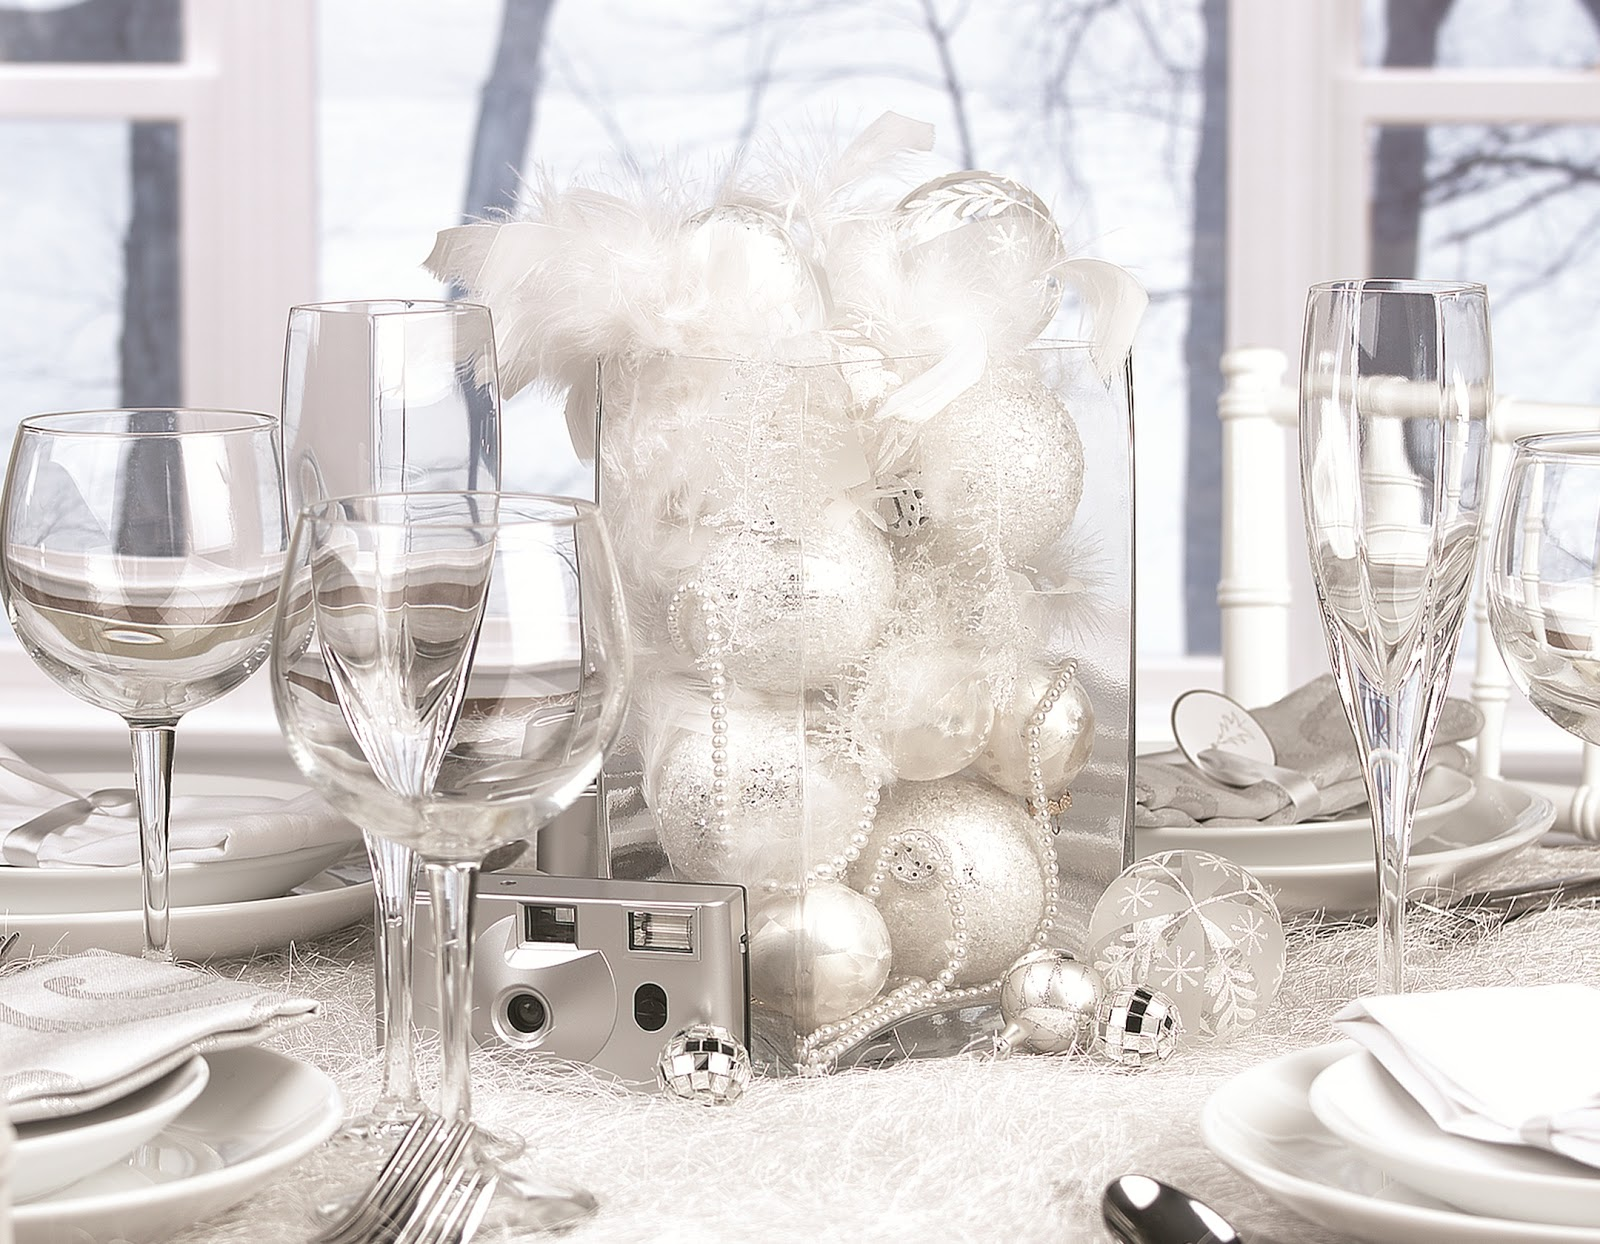 Warm up to winter white winter white wonderland holdiay White christmas centerpieces